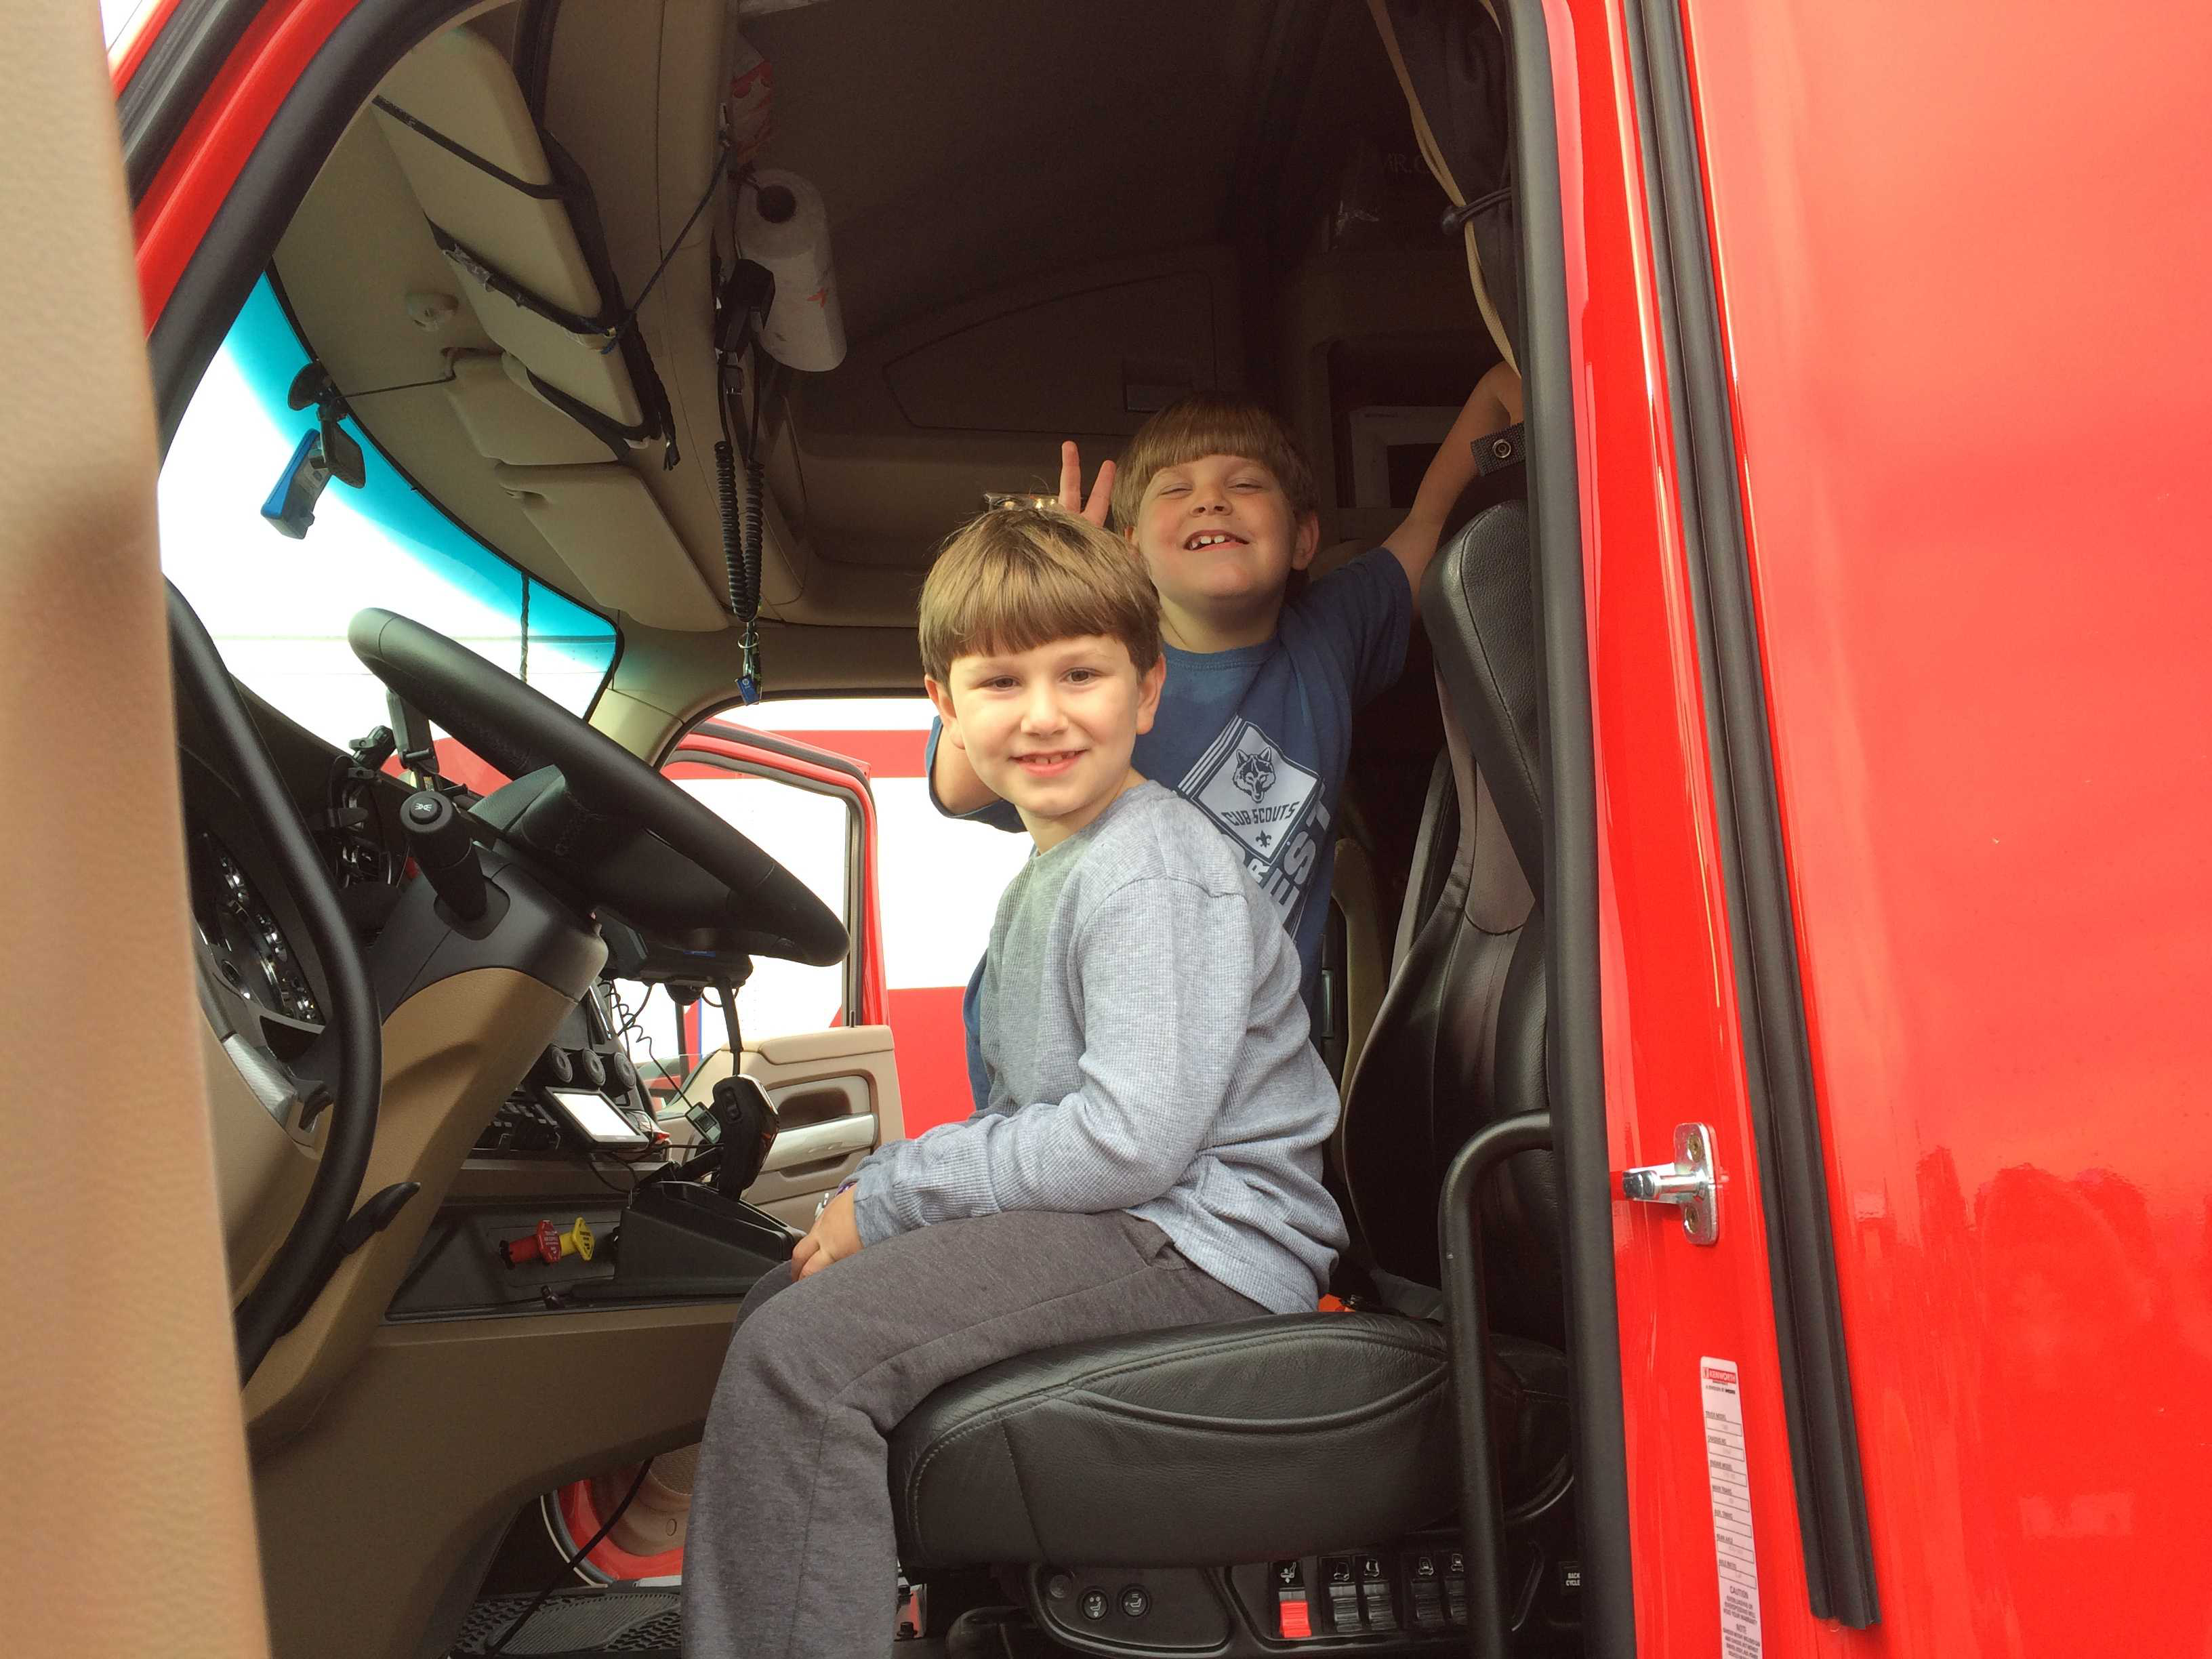 Trucker Buddy promotes industry at Boy Scouts event